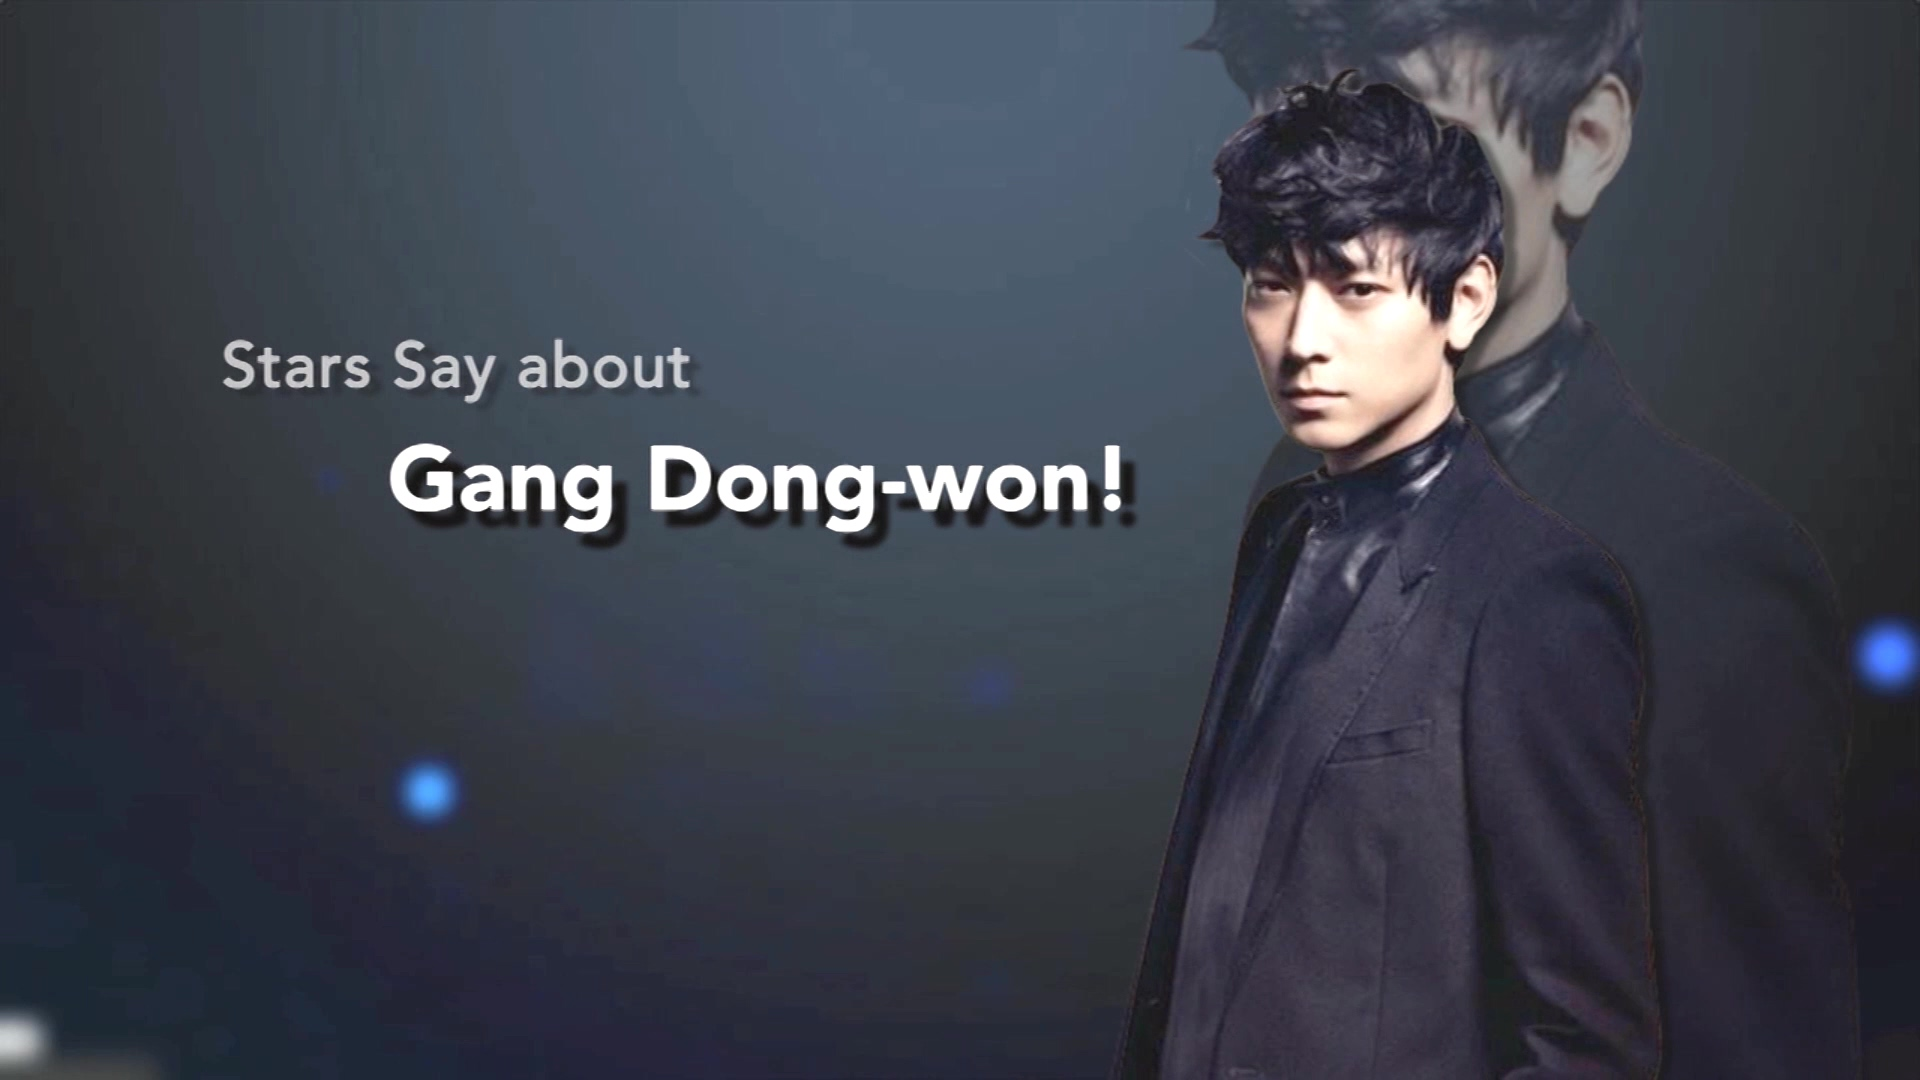 [Showbiz Korea] Gang Dong-won